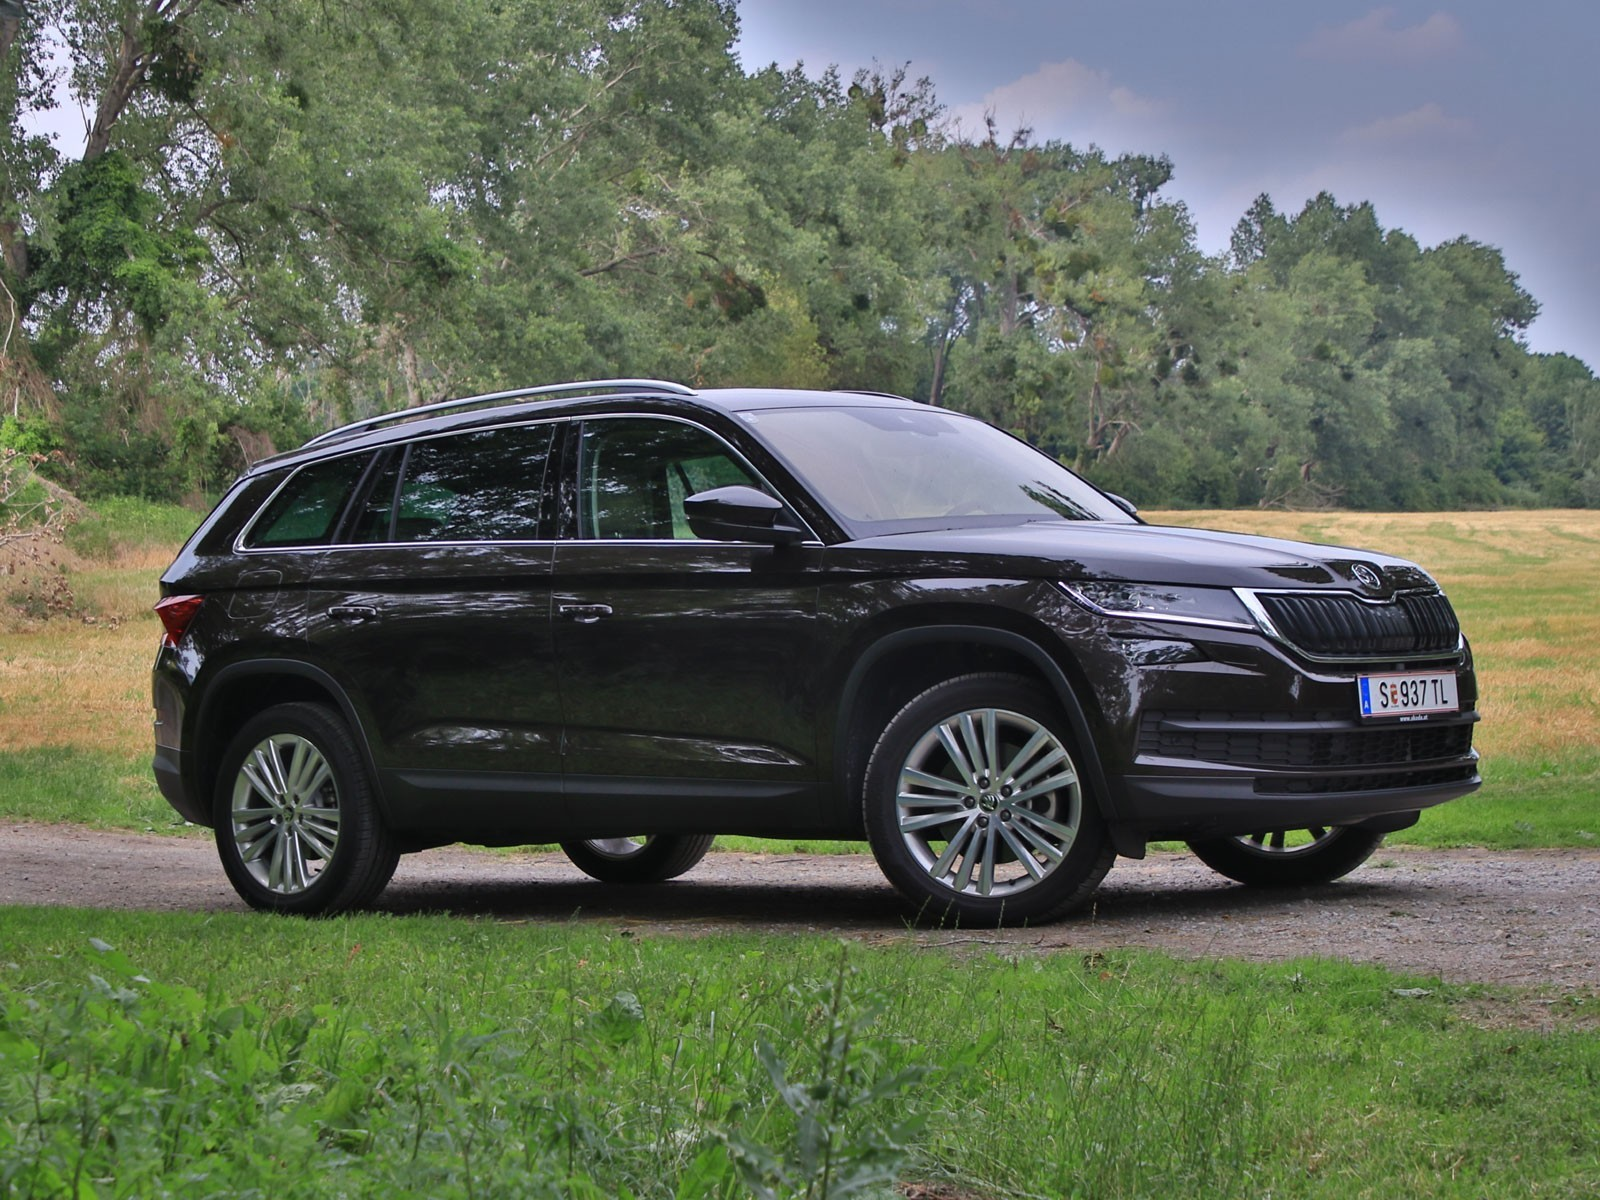 foto skoda kodiaq 4x4 style tdi dsg testbericht vom artikel der neue skoda kodiaq. Black Bedroom Furniture Sets. Home Design Ideas